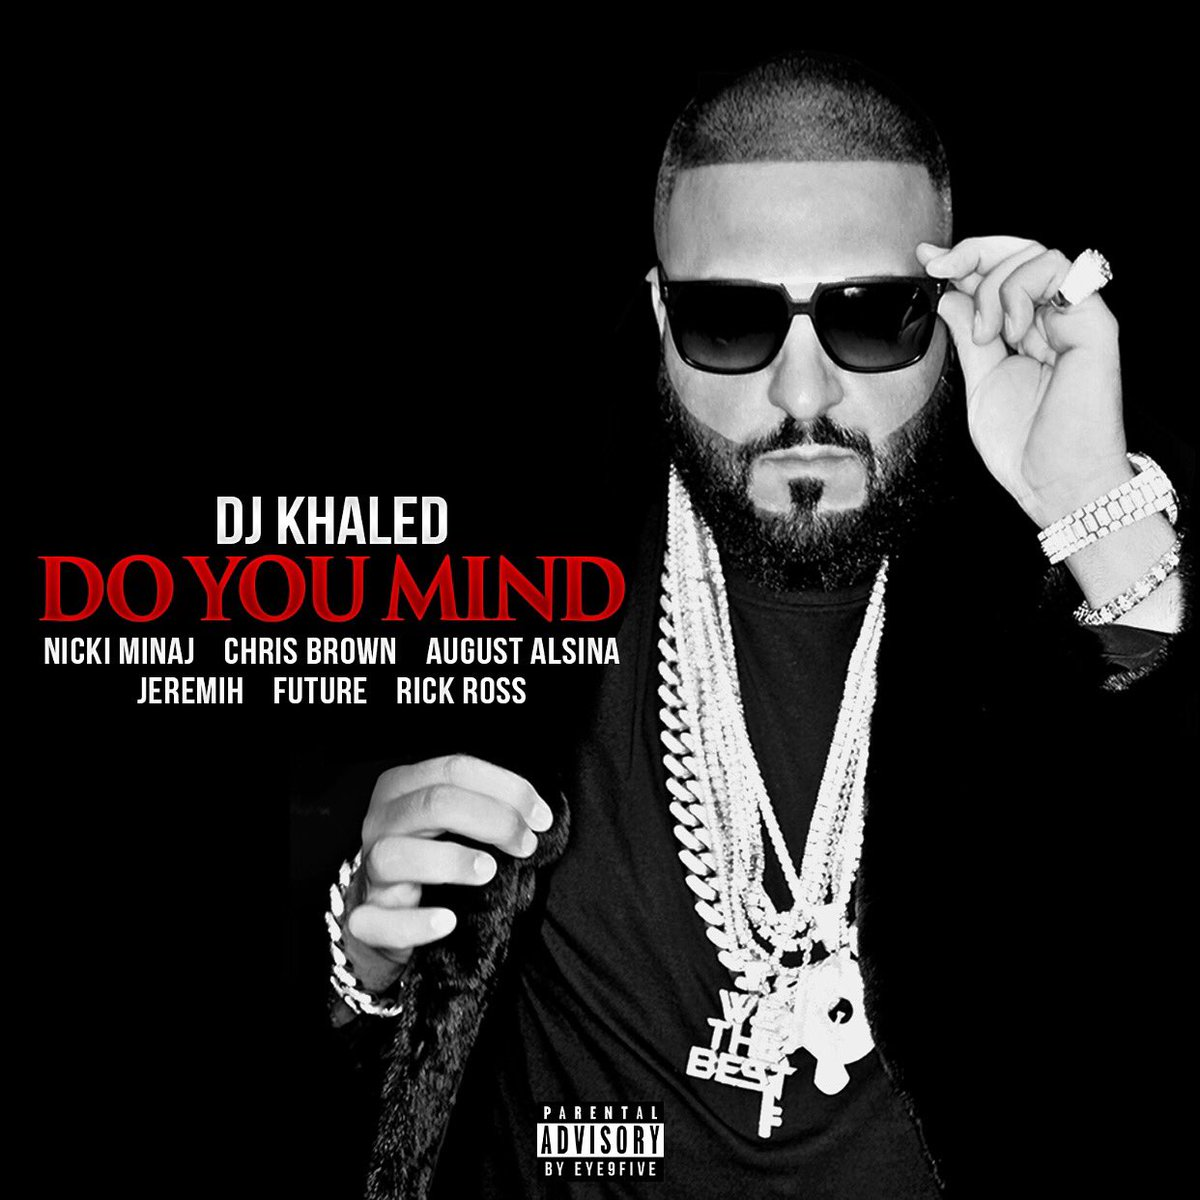 I love this song! #DoYouMind on iTunes @ Midnight EST!!!!! Major key @djkhaled https://t.co/WrbOAiiRsp